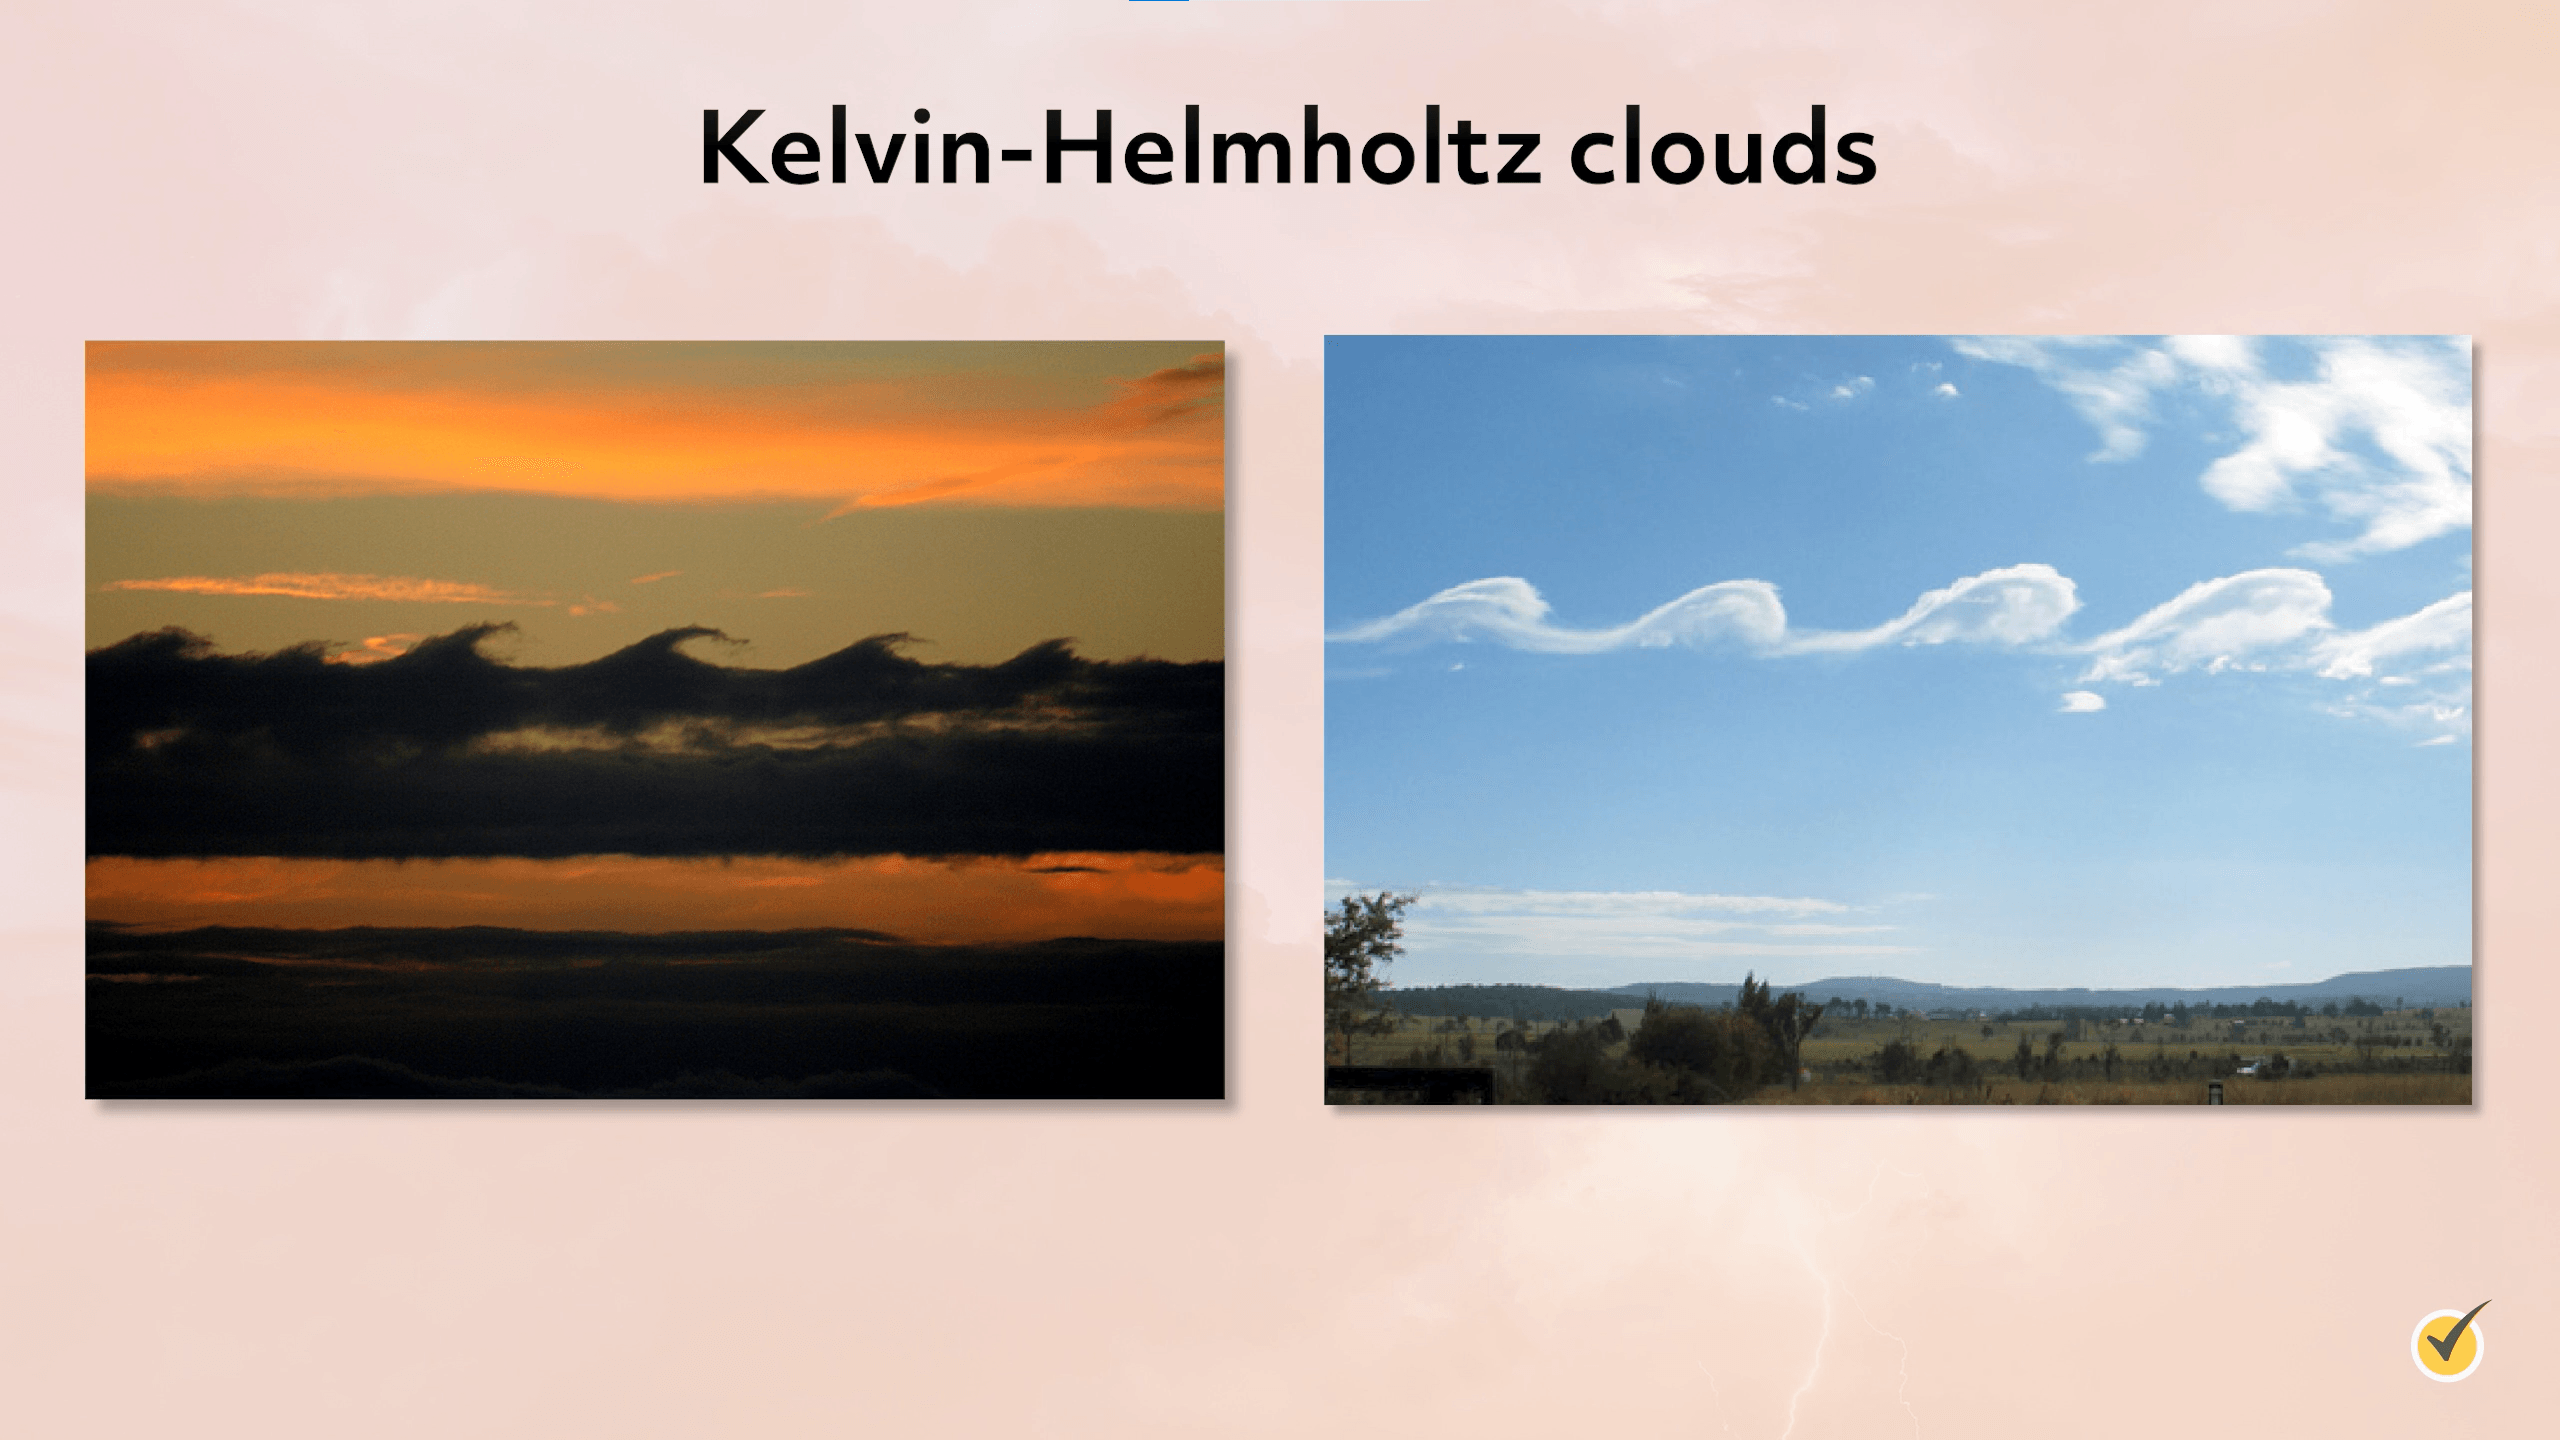 Image of Kelvin-Helmholtz clouds. These clouds are horizontal, and they look like the waves of the ocean.